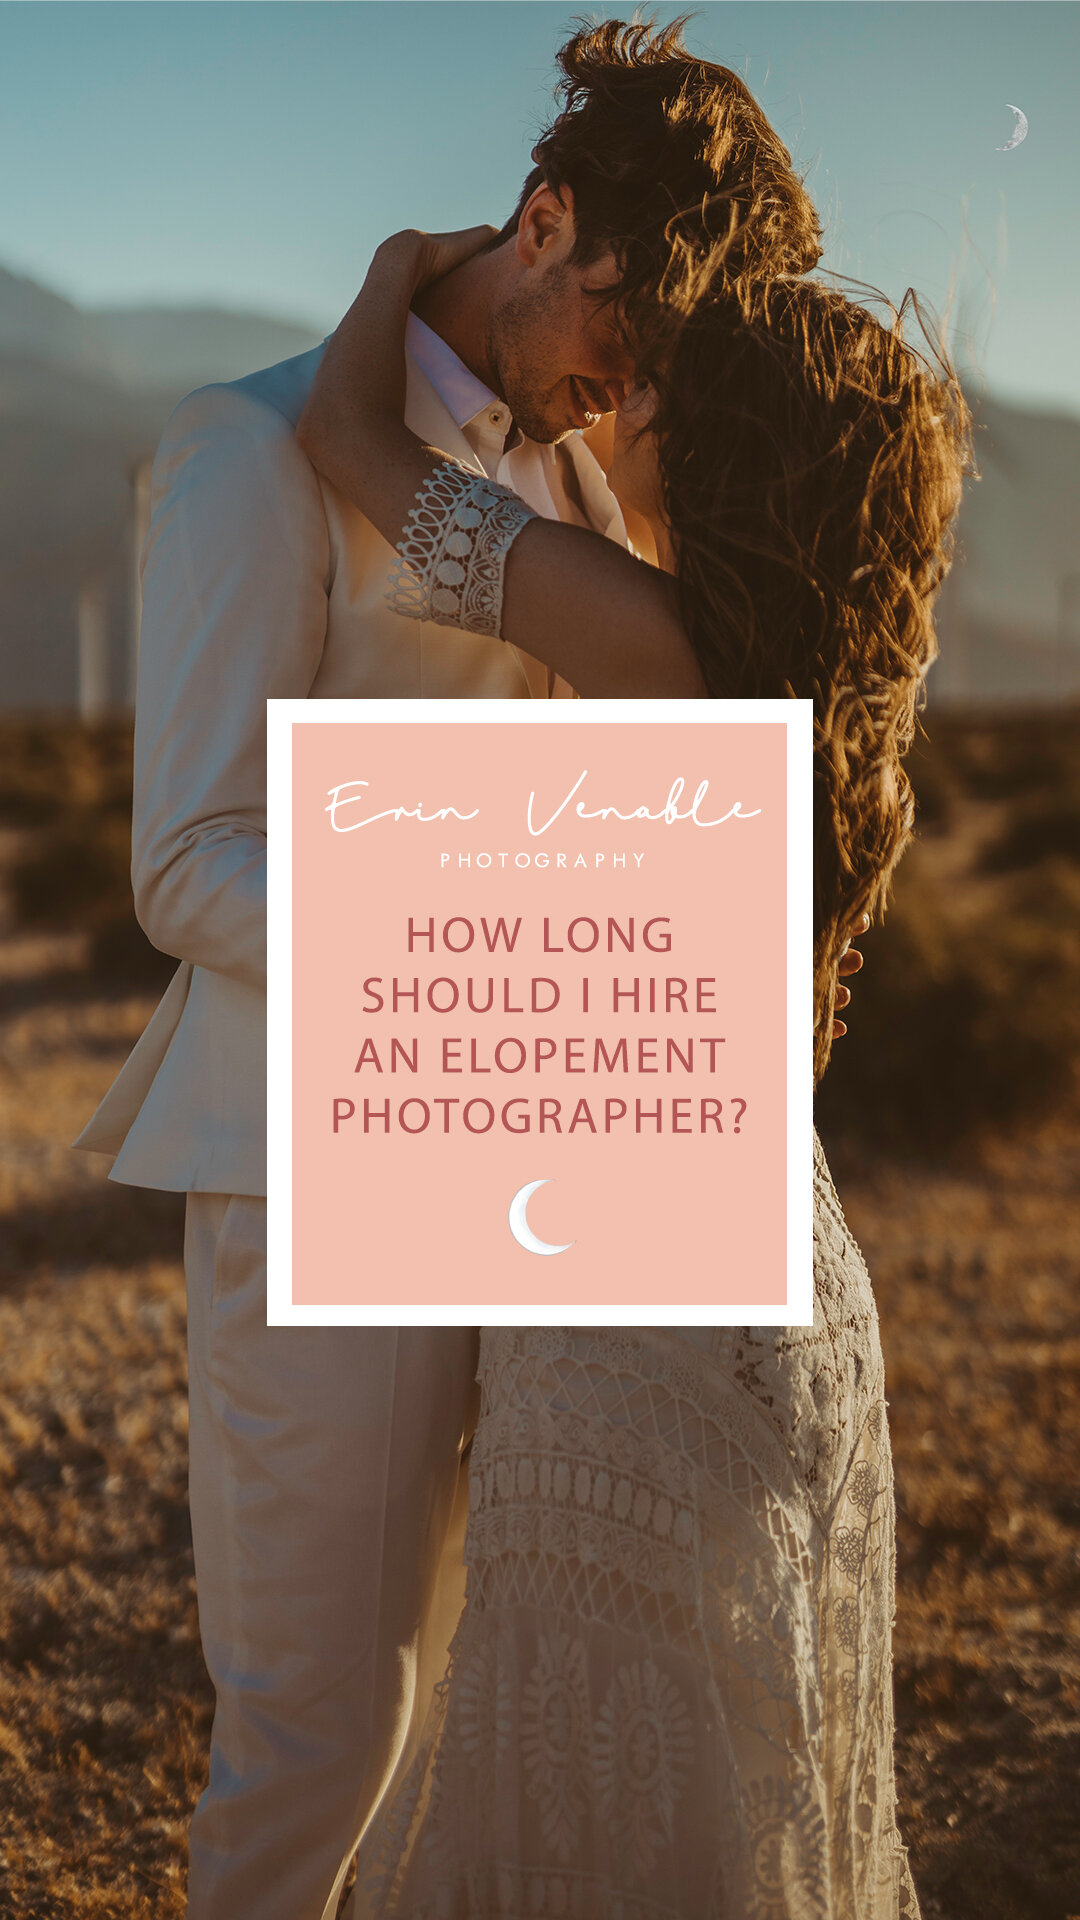 how long should i hire an elopement photographer for.jpg